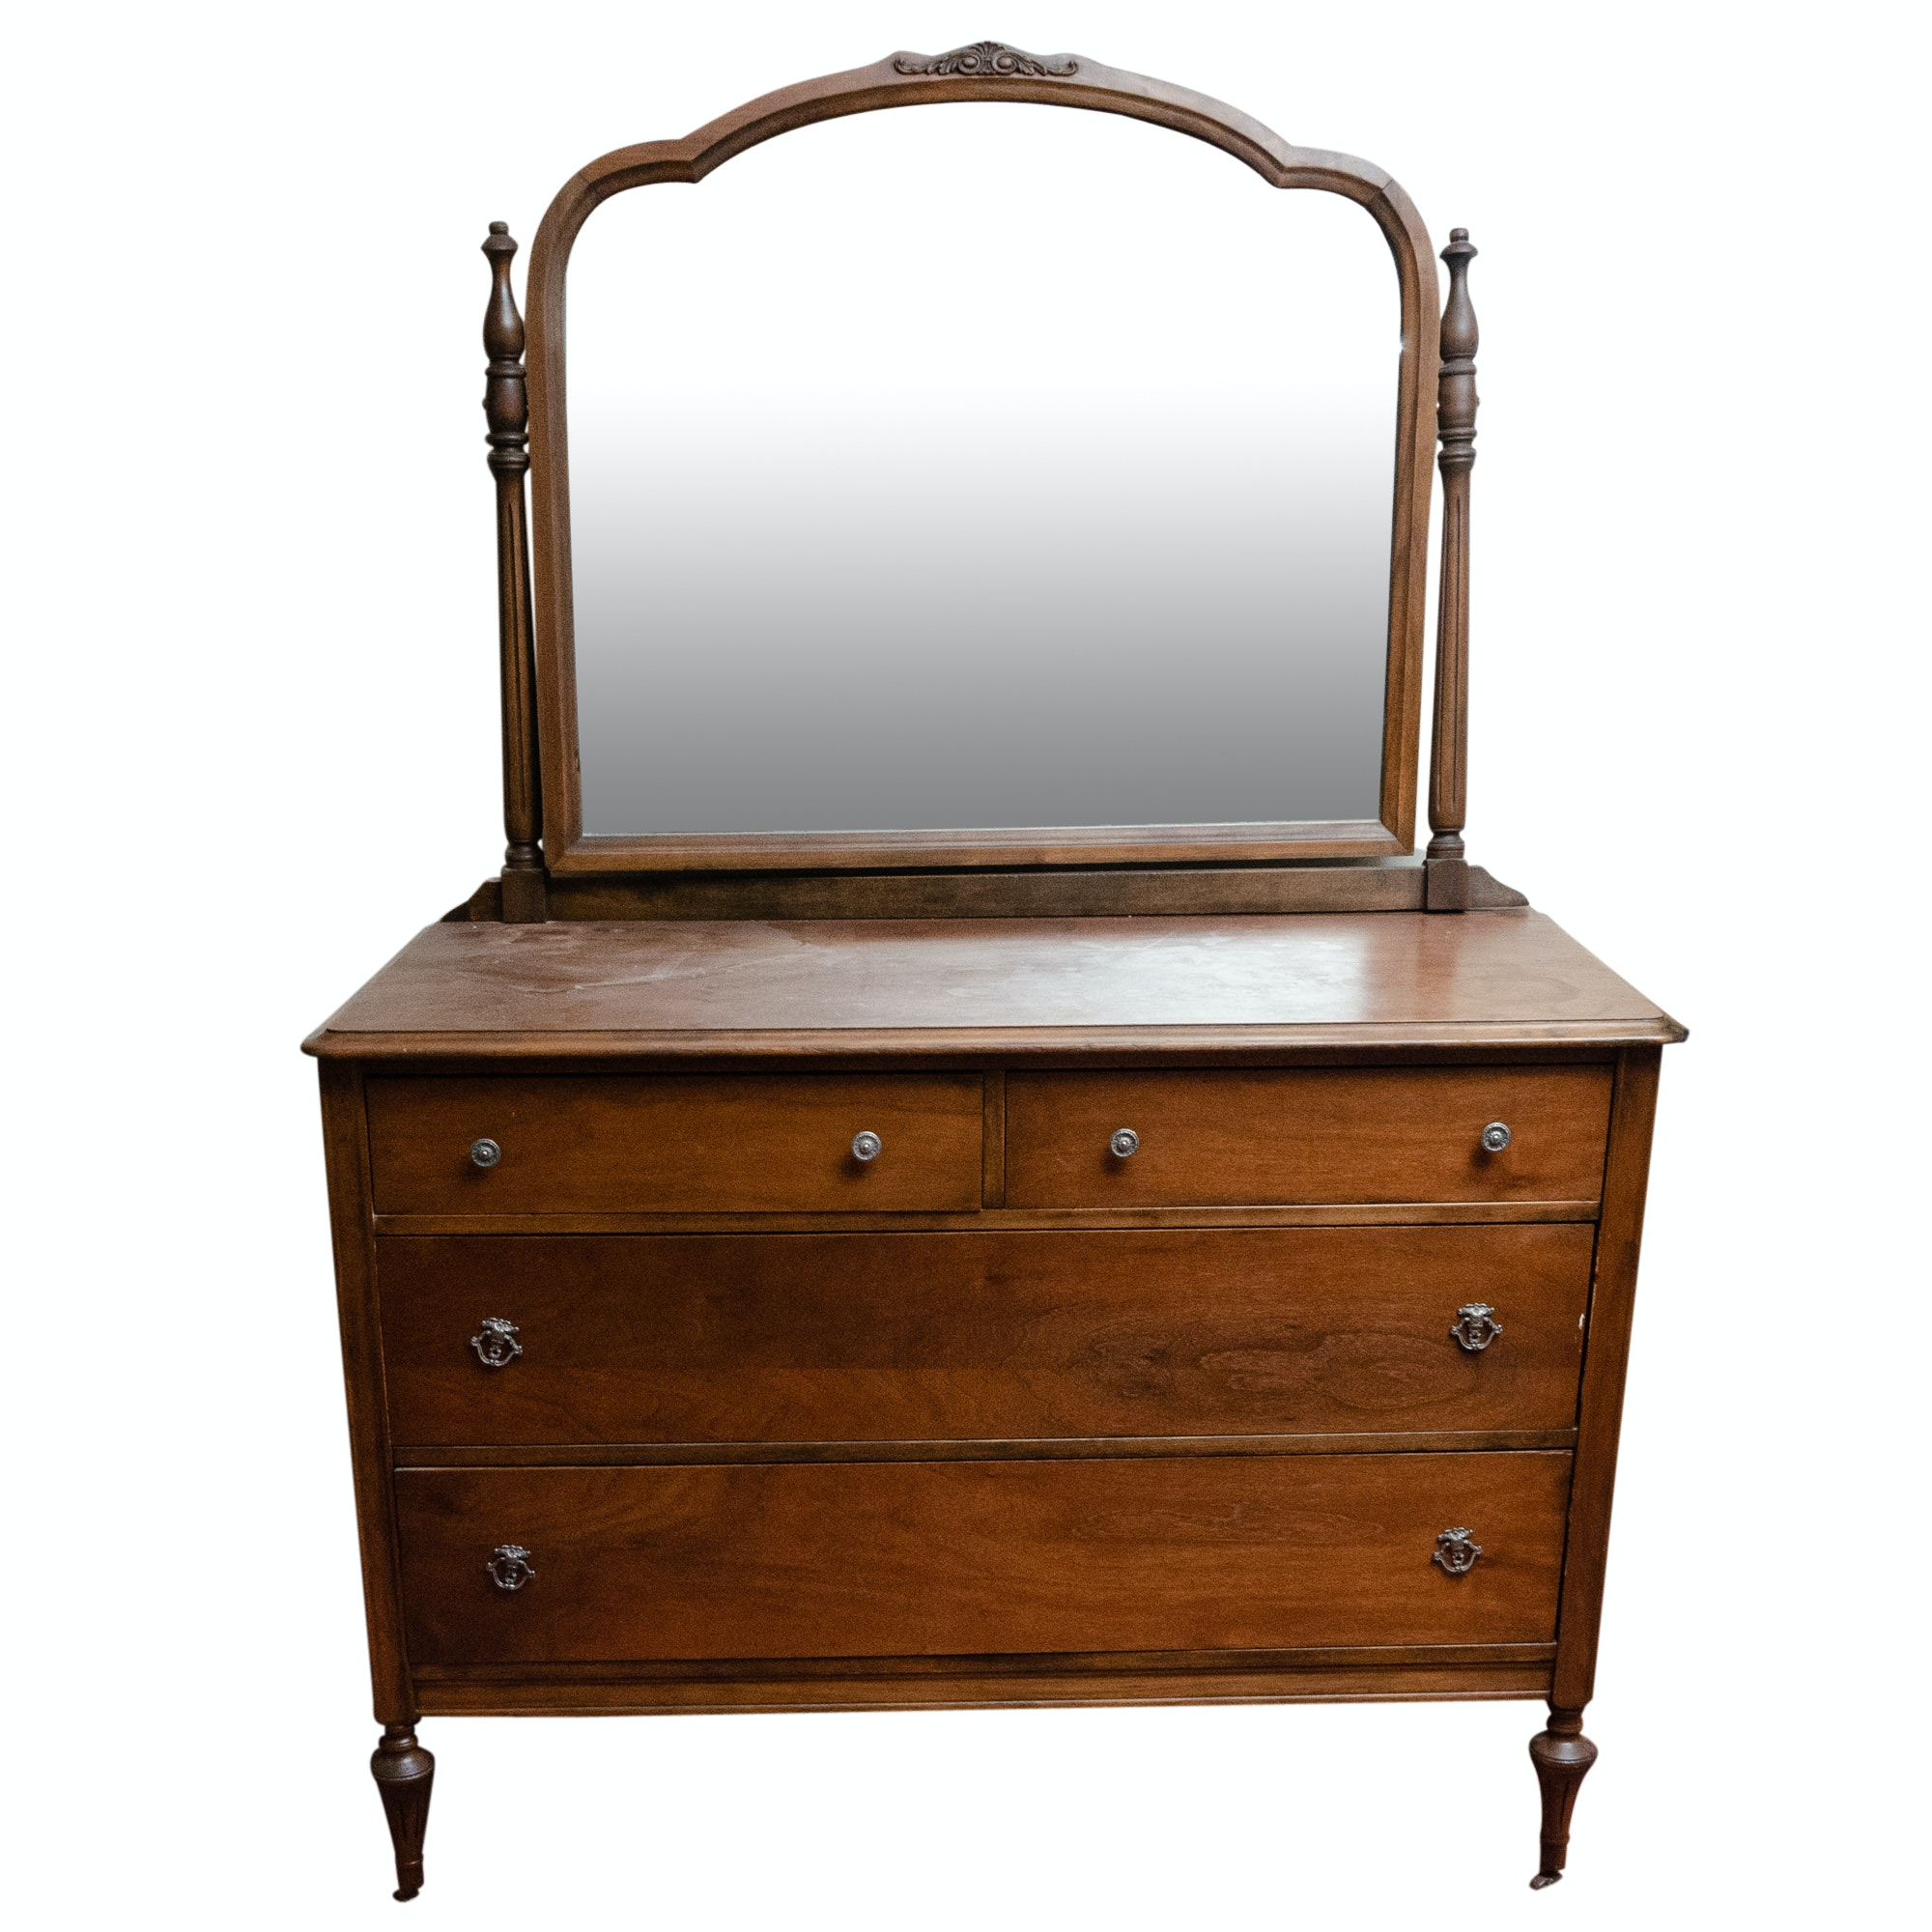 Antique Victorian Style Chest of Drawers with Mirror